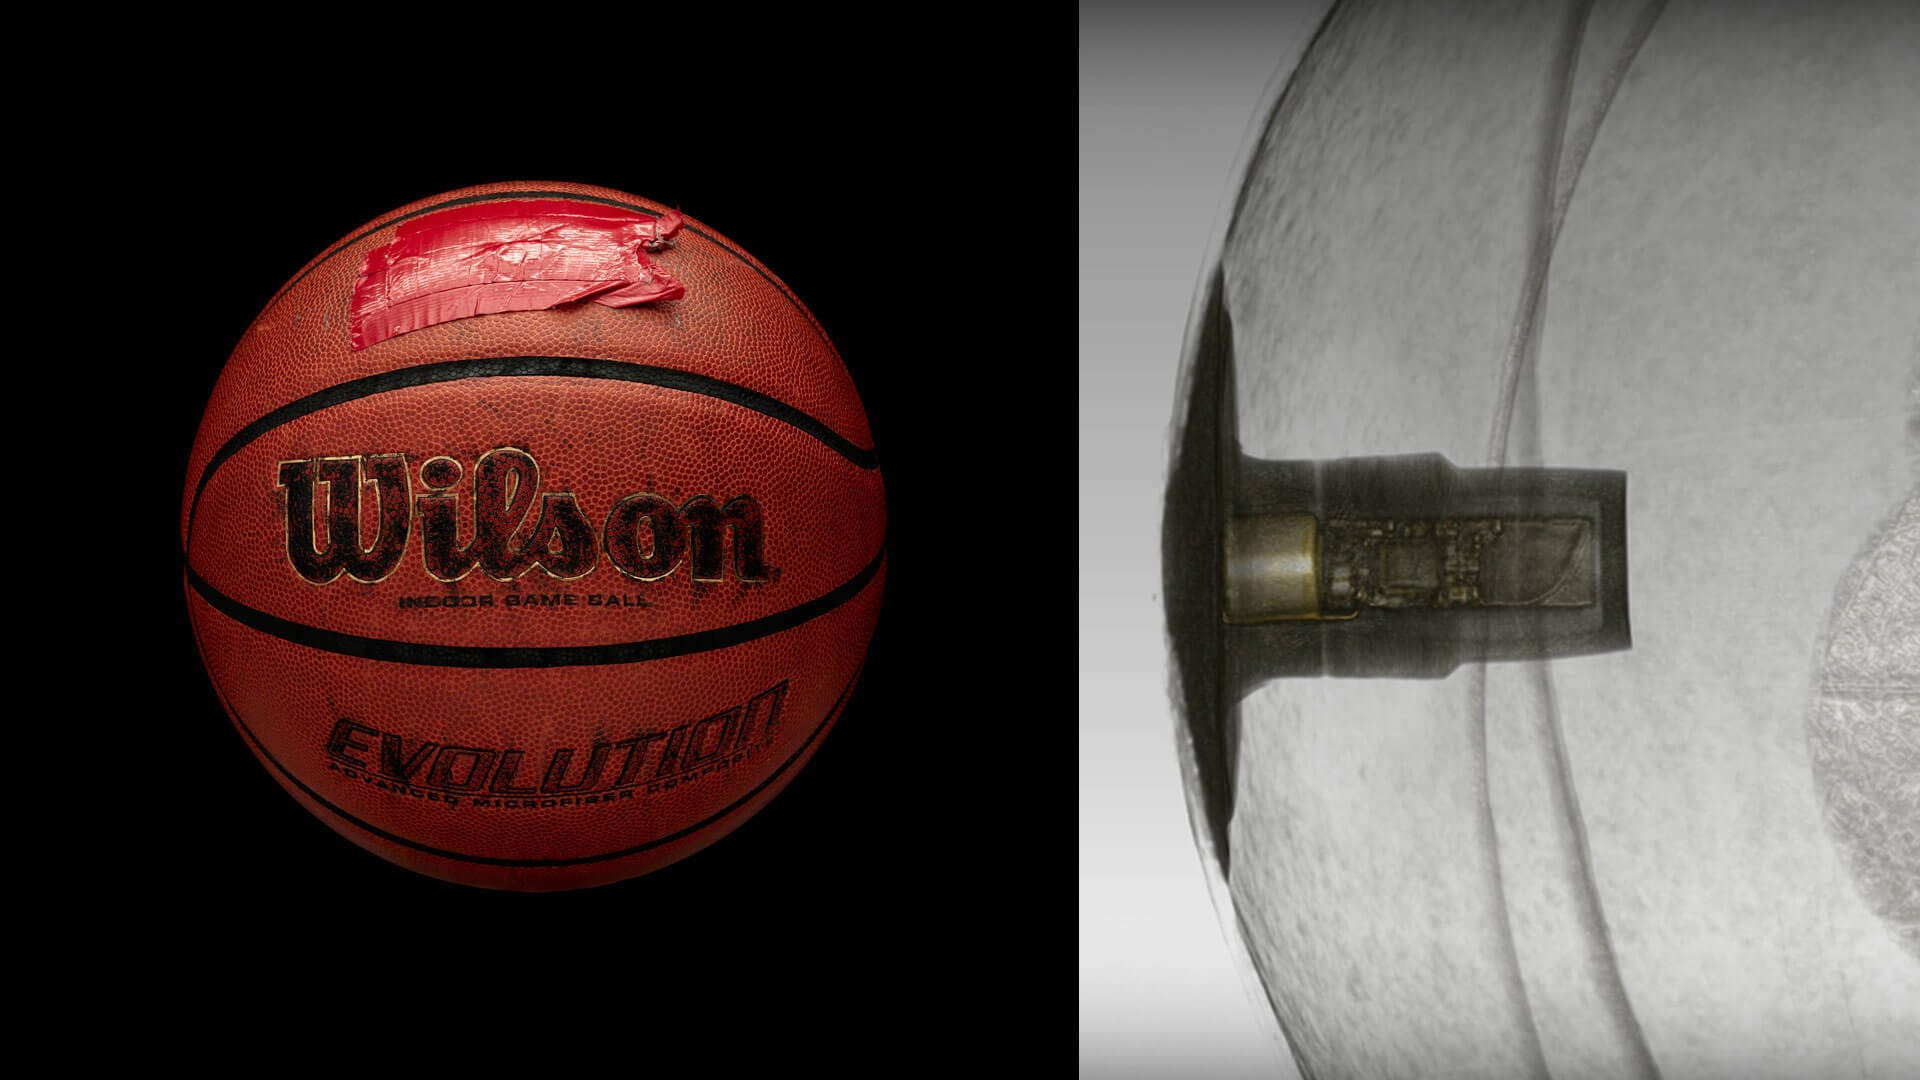 Wilson X Connected Basketball Prototypes